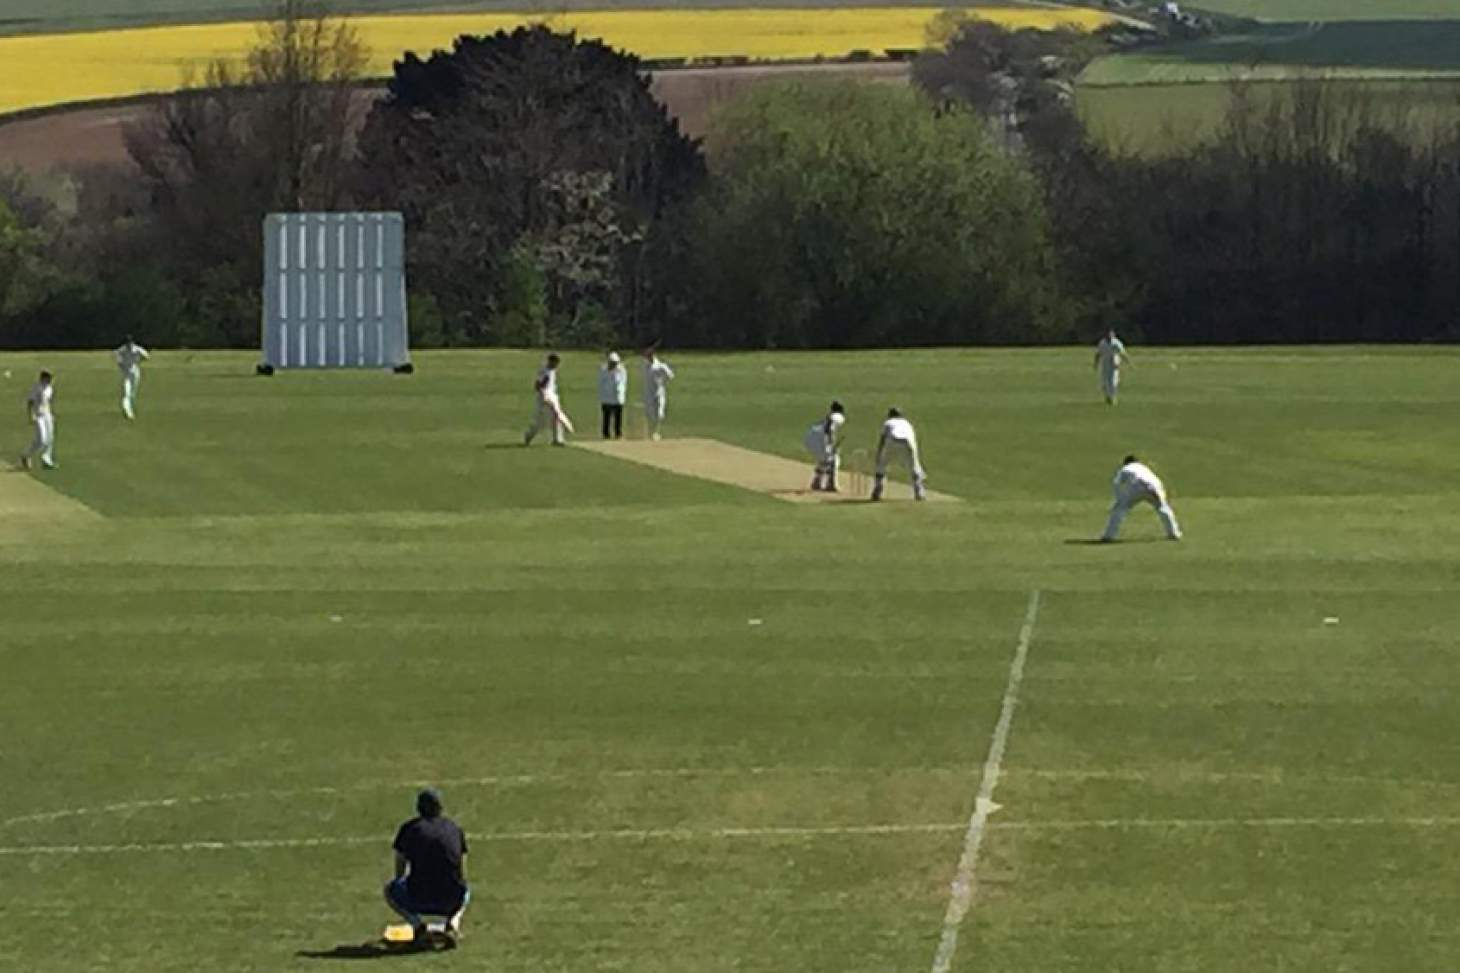 Falmer Sports Complex Full size | Grass cricket facilities